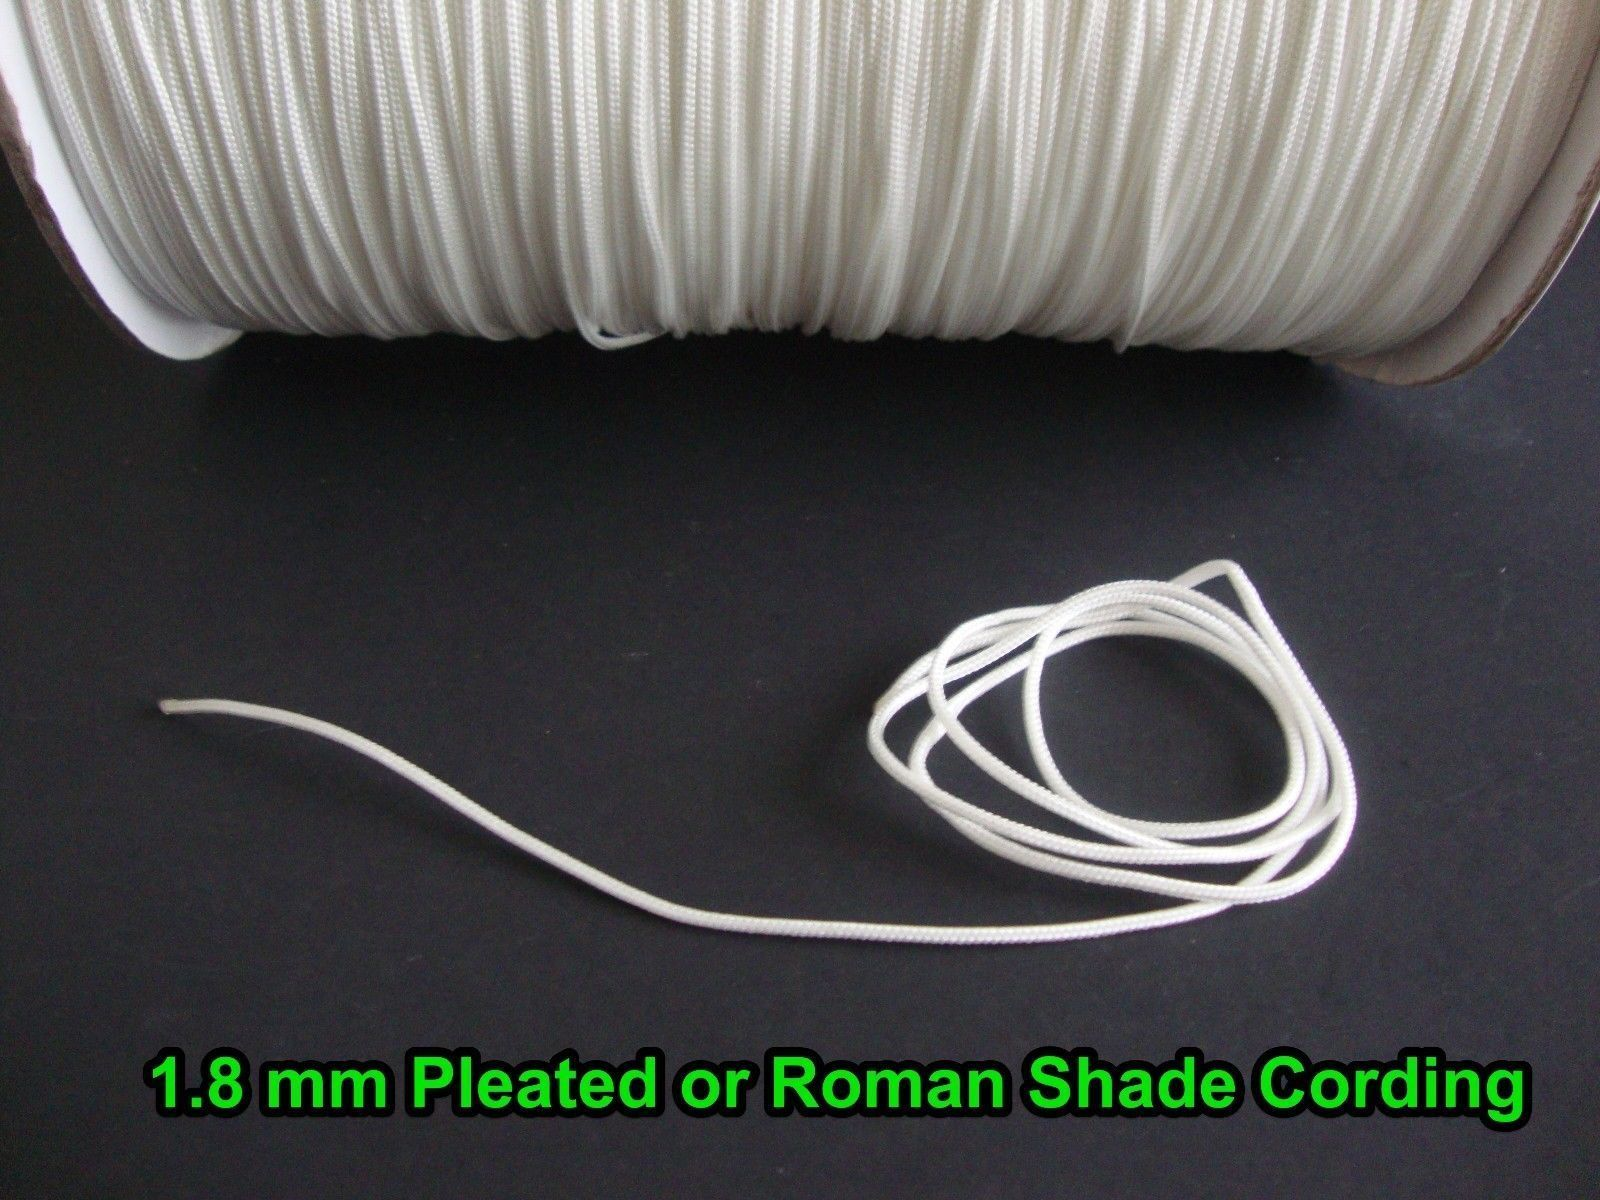 1000 YARDS :1.8mm LIFT CORD, in White For Blinds and Shades